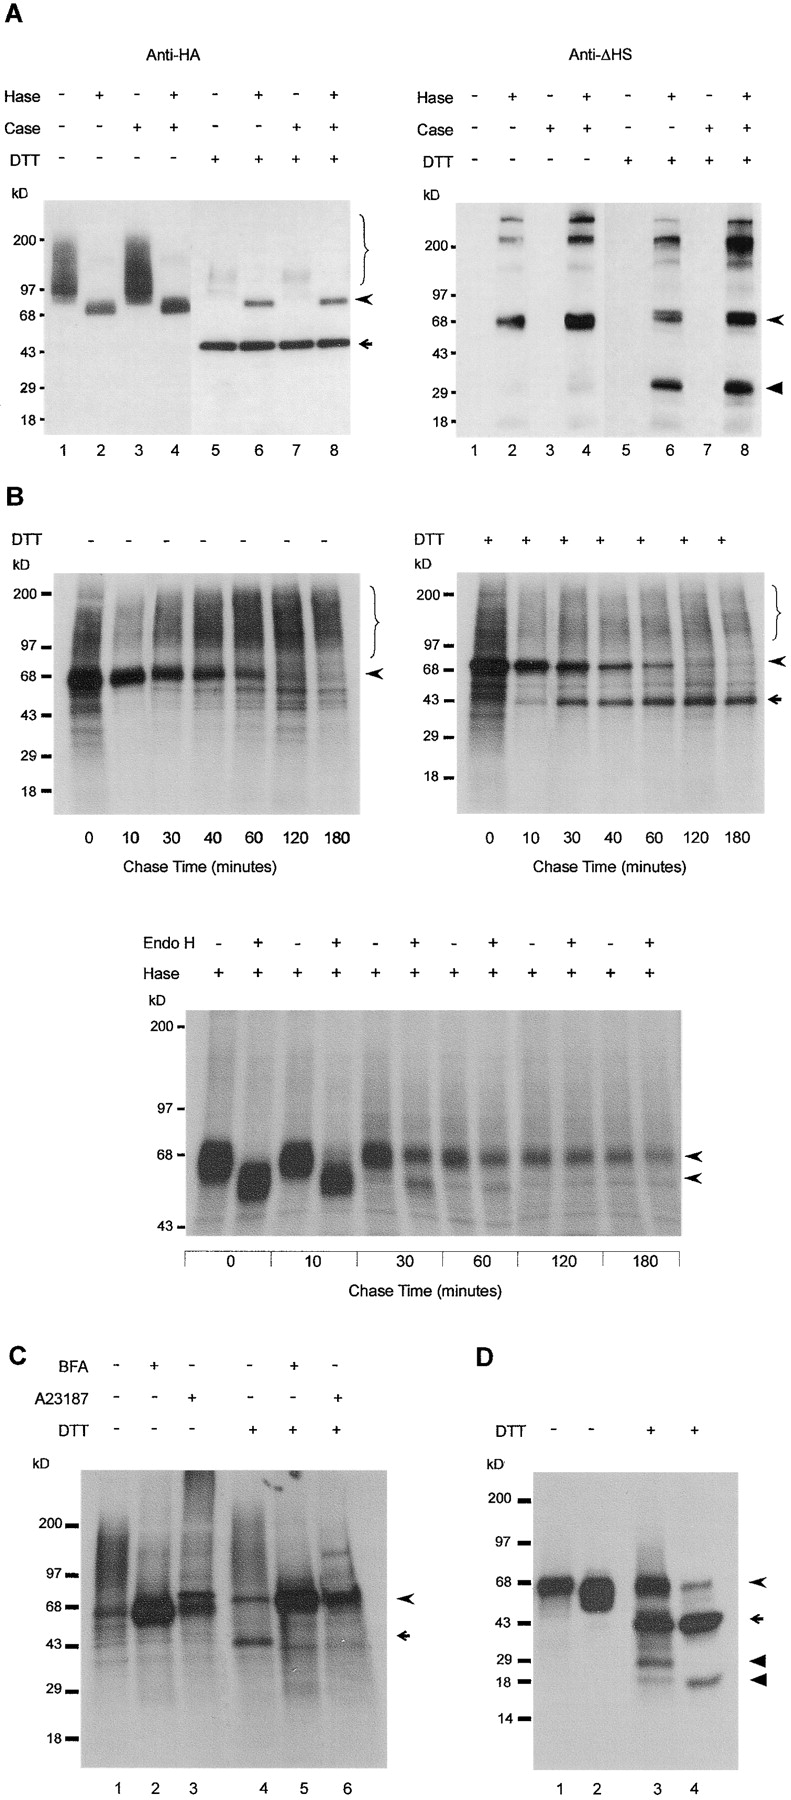 Posttranslational modification of GPC3 in MDCK cells. Total proteoglycan or GPC3 isolated from stable transfectant cells was treated with heparitinase (Hase), chondroitinase ABC (Case), or endoglycosidase H (Endo H) as indicated, and fractionated by SDS-PAGE under reducing (DTT) or nonreducing conditions. (A) Two-subunit structure of GPC3. Western blots of total proteoglycan extract, using rat anti-HA mAb 3F10 to detect GPC3, and anti-ΔHS mAb 3G10 to detect the desaturated uronates that are generated by heparitinase and that remain in association with the core proteins. (B) Time course of the GPC3 maturation. Cells were pulse labeled with [ 35 S]cysteine-methionine for 10 min and chased for the indicated time periods. GPC3 from cell lysates, isolated using anti-HA antibody, was detected by autoradiography. Unreduced (left) and reduced (right) non enzyme-treated samples (top), and reduced glycosidase-treated samples (bottom) reveal that the HS substitution, proteolytic processing, and Endo H–resistant N-glycosylation of GPC3 follow similar time courses. (C) Inhibition of GPC3 processing by blocking ER export or calcium depletion. Cells were incubated for 6 h with (+) or without (−) 30 μM BFA or 2 μM A23187, pulse-labeled for 10 min, and chased for 60 min. GPC3 immunopurified from cell lysate was detected by autoradiography. (D) Endoproteolytic processing of GPC3ΔHS. Labeled HA-GPC3ΔHS was immunoprecipitated from the cell lysate (lanes 1 and 3) and the conditioned medium (lanes 2 and 4). Braces show glycanated GPC3, curved arrowheads indicate the GPC3 core protein, arrows indicates the ∼40-kD NH 2 -terminal (HA-tagged) α-subunit, and arrowheads indicate the COOH-terminal β subunit that is separated from the α-subunit by reduction. Numbers on the left represent molecular mass markers.